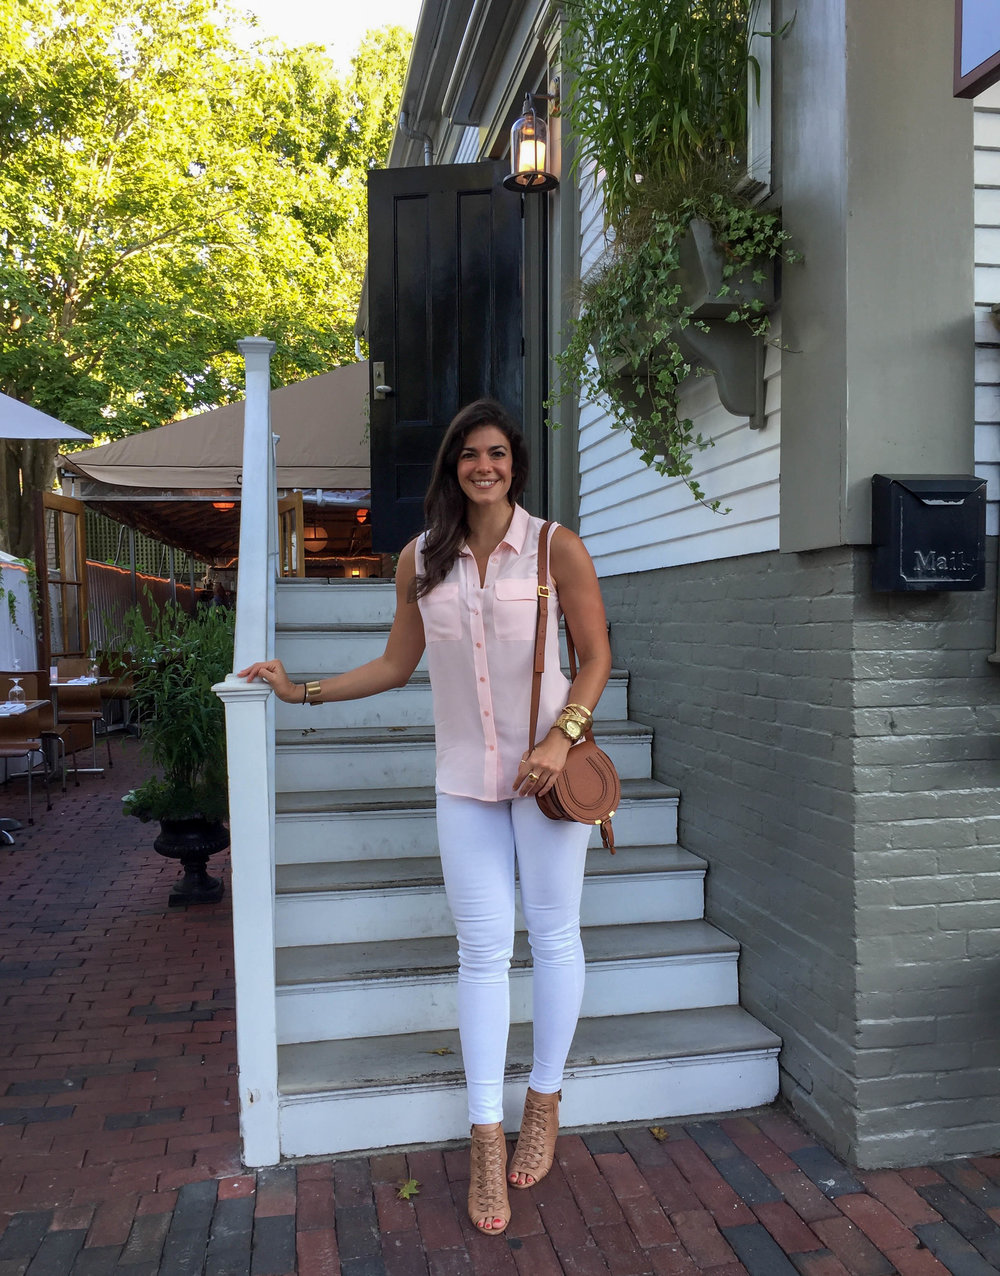 LaurenSchwaiger-Travel-Lifestyle-Blog-Summer-Style-Nantucket.jpg